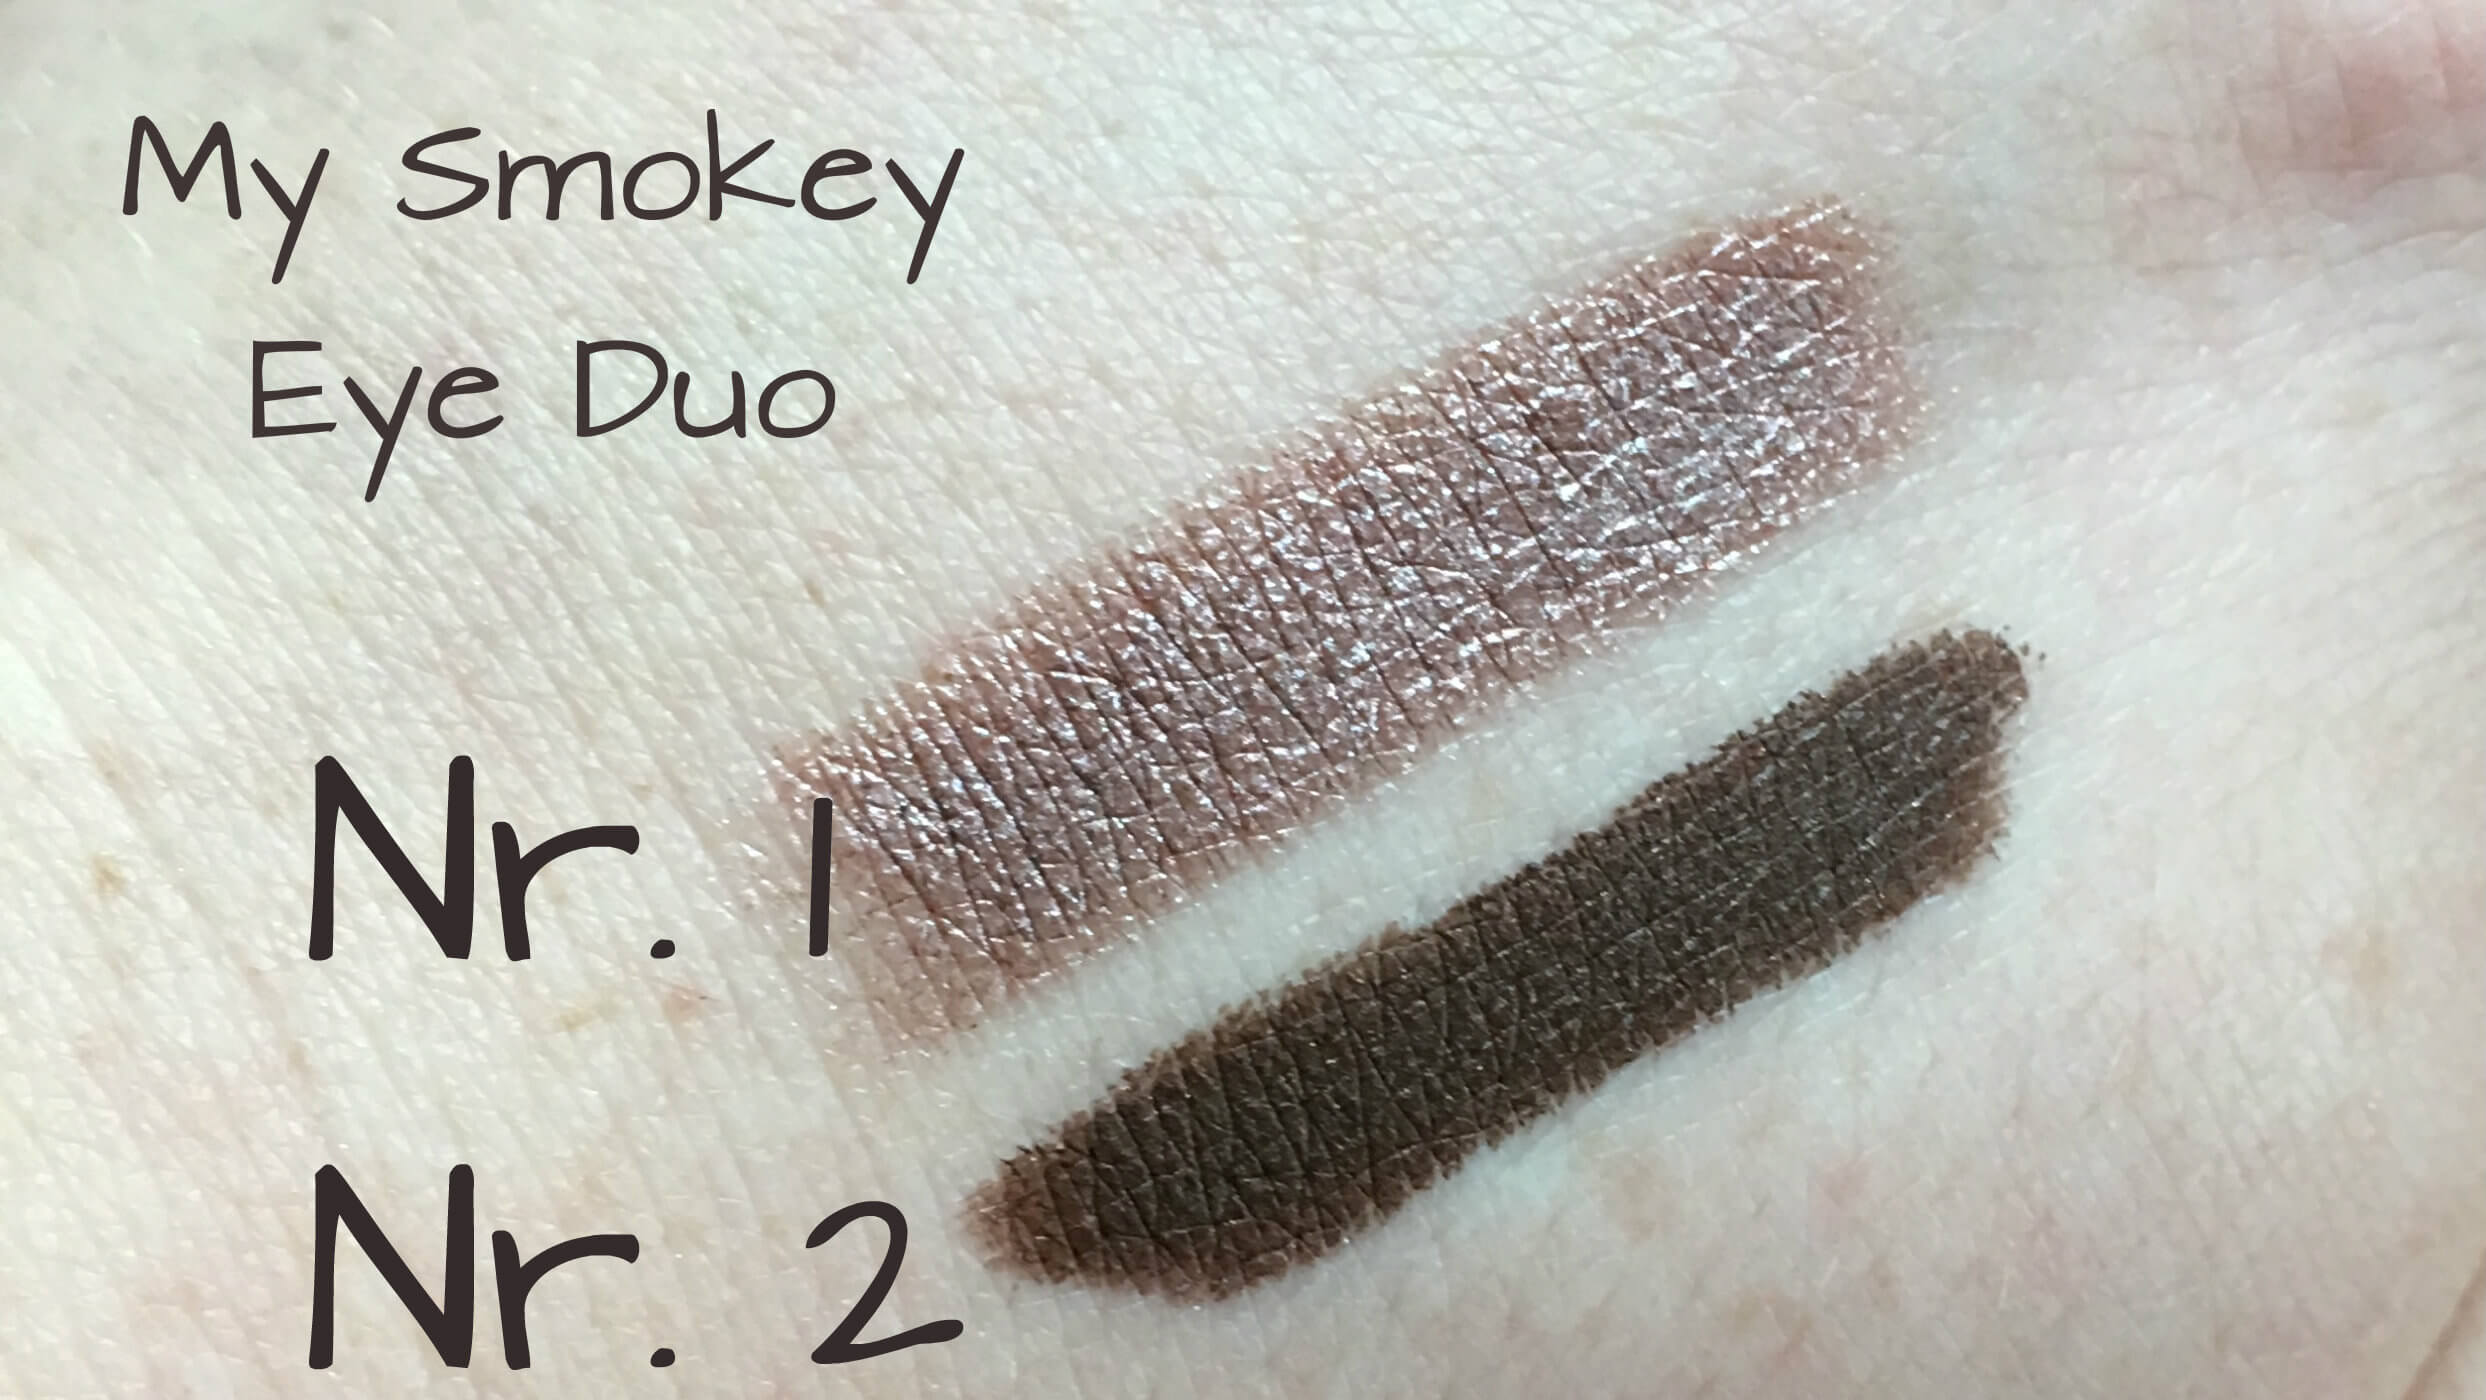 Smokey Eye Duo